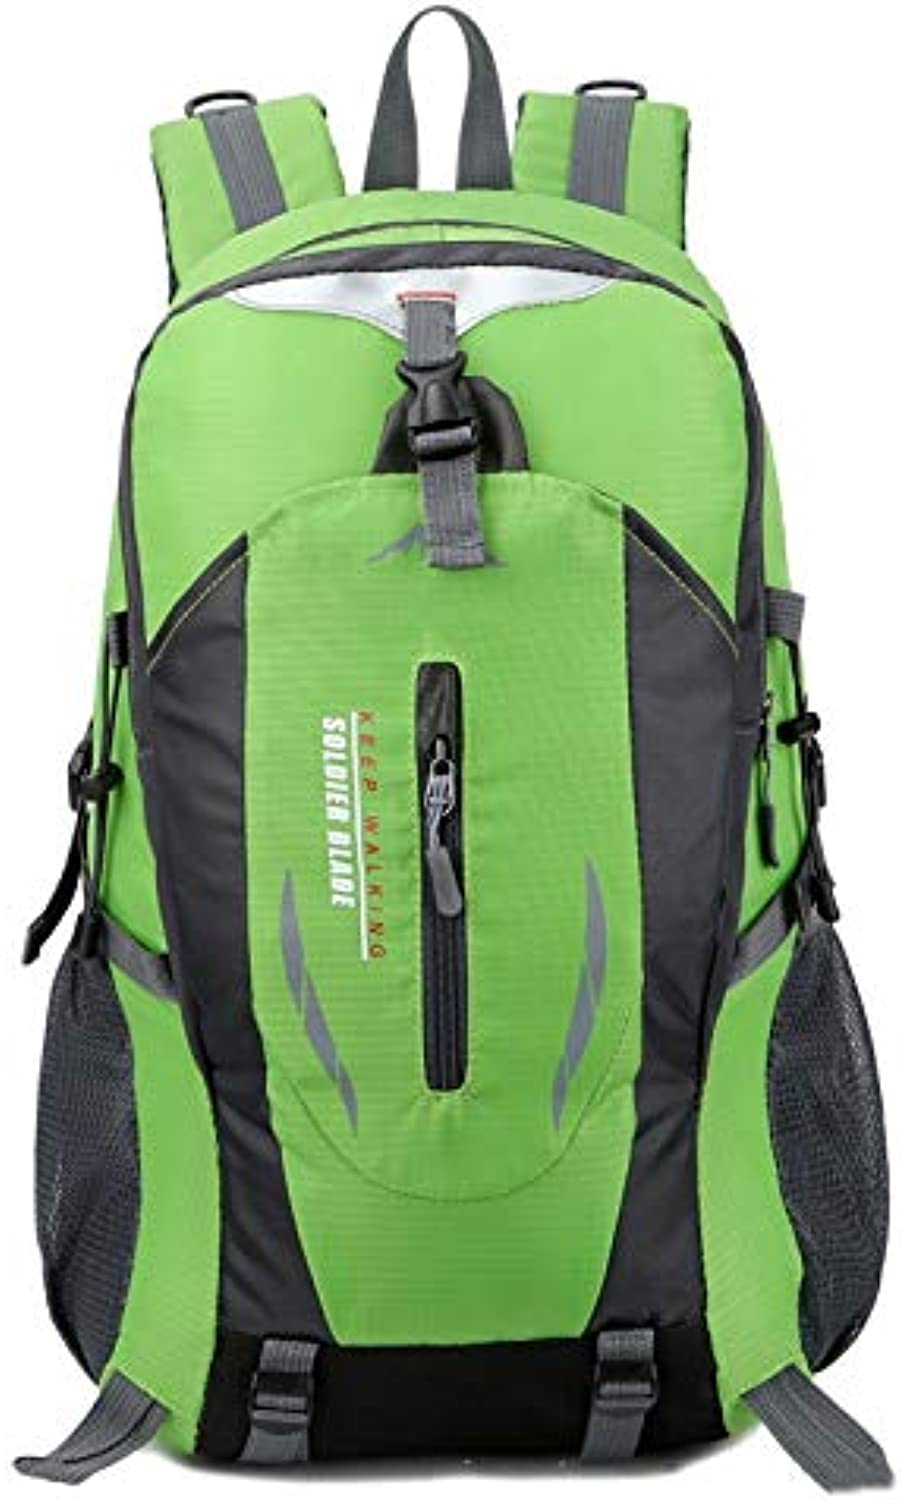 Backpack Travel Backpack Student 36   45L Men and Women Hiking Camping Hiking Waterproof Backpack (color   Green, Size   Free Size)